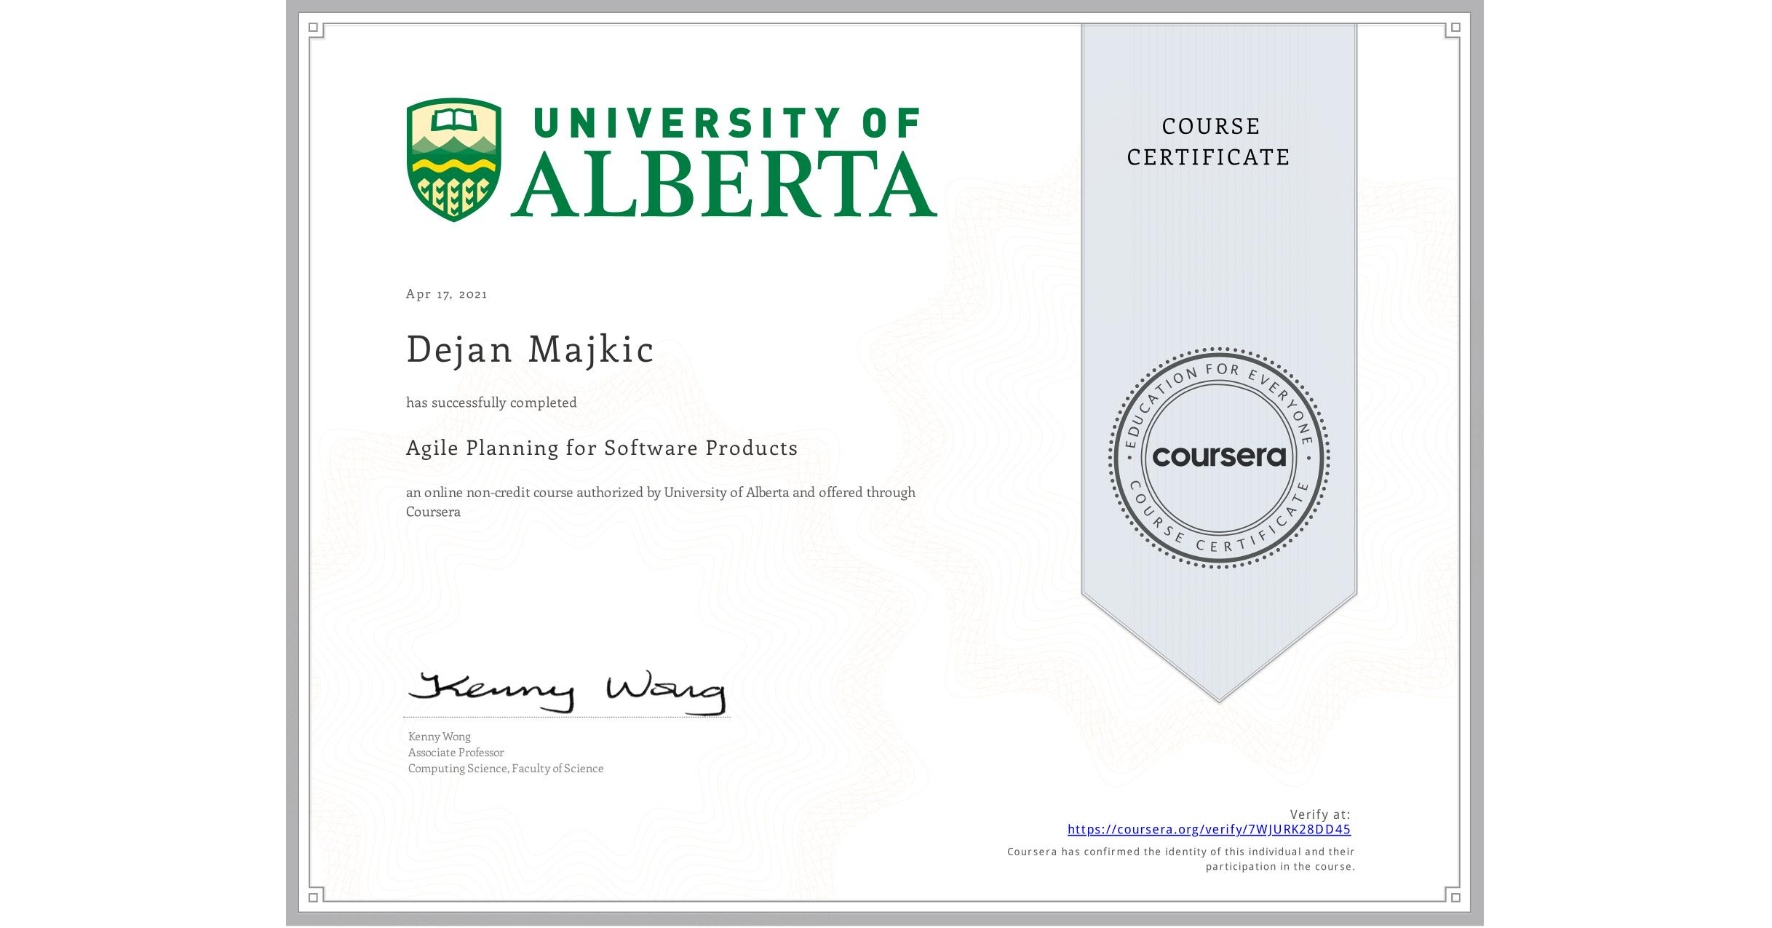 View certificate for Dejan Majkic, Agile Planning for Software Products, an online non-credit course authorized by University of Alberta and offered through Coursera